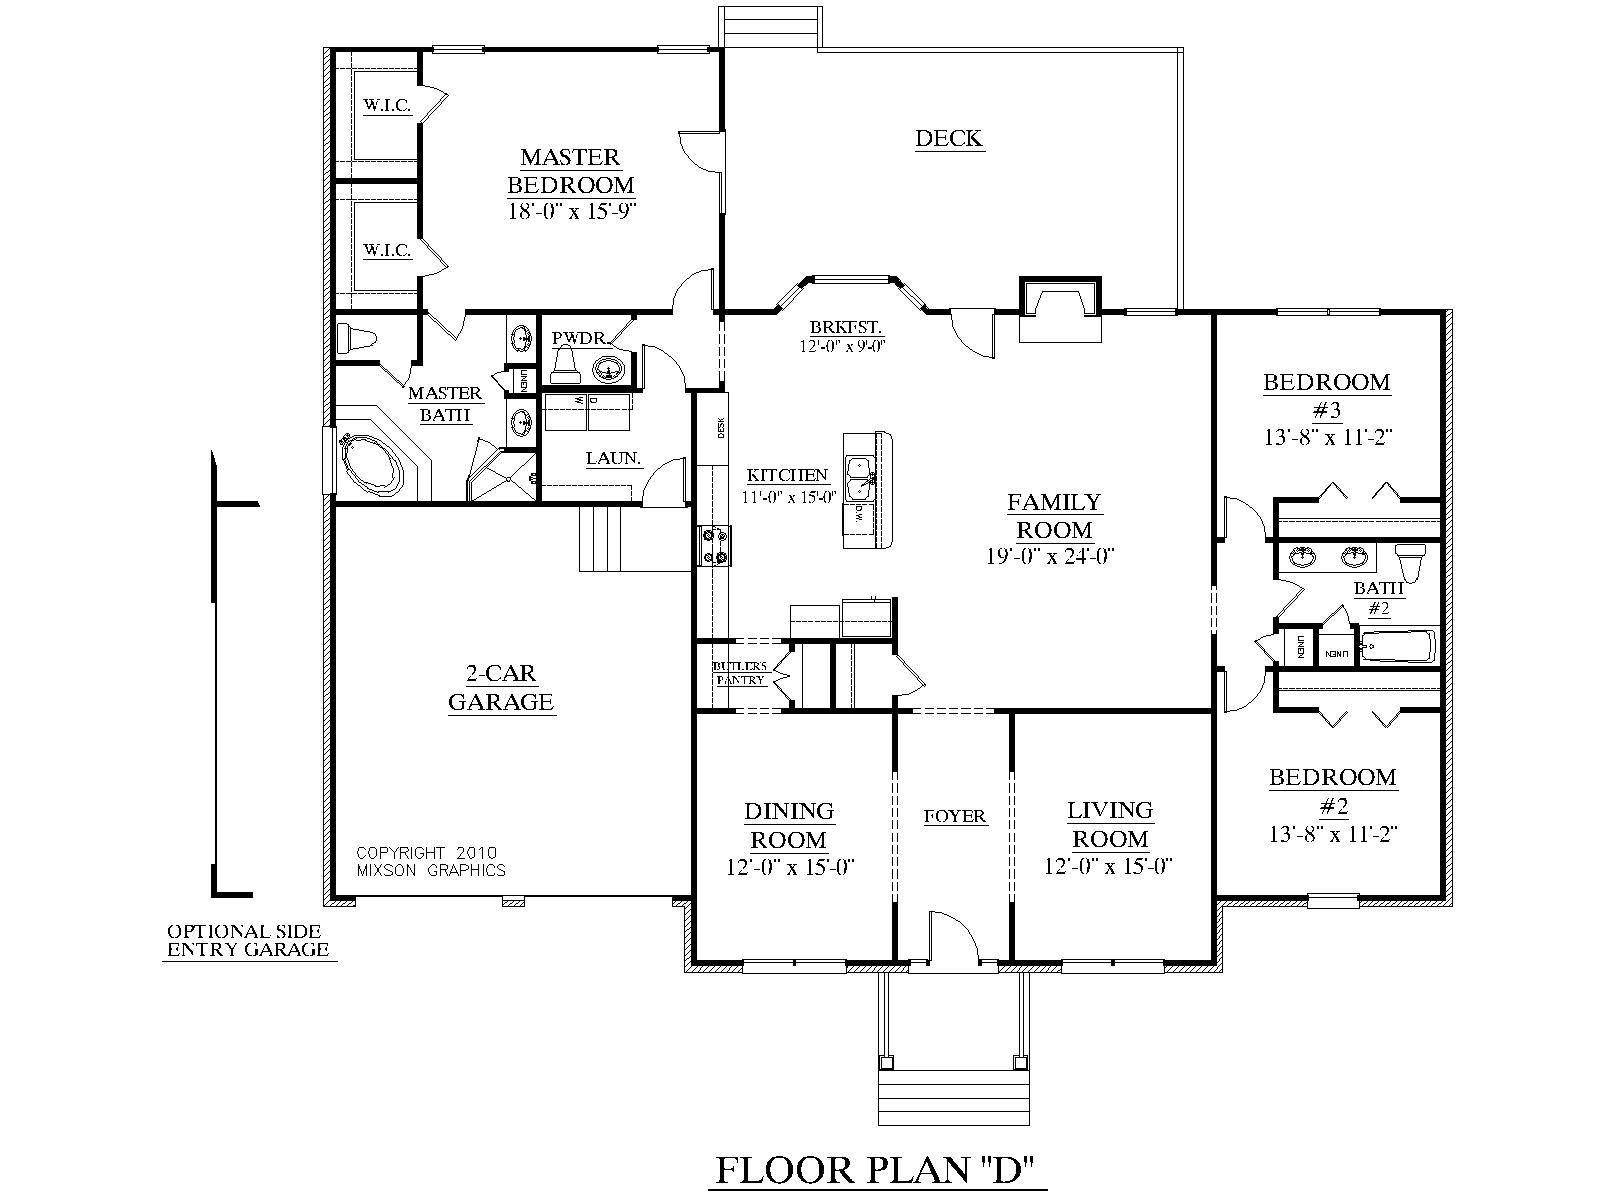 House Plans For 2000 Sq Ft Ranch Floor Plans Open Concept House Plans House Plans